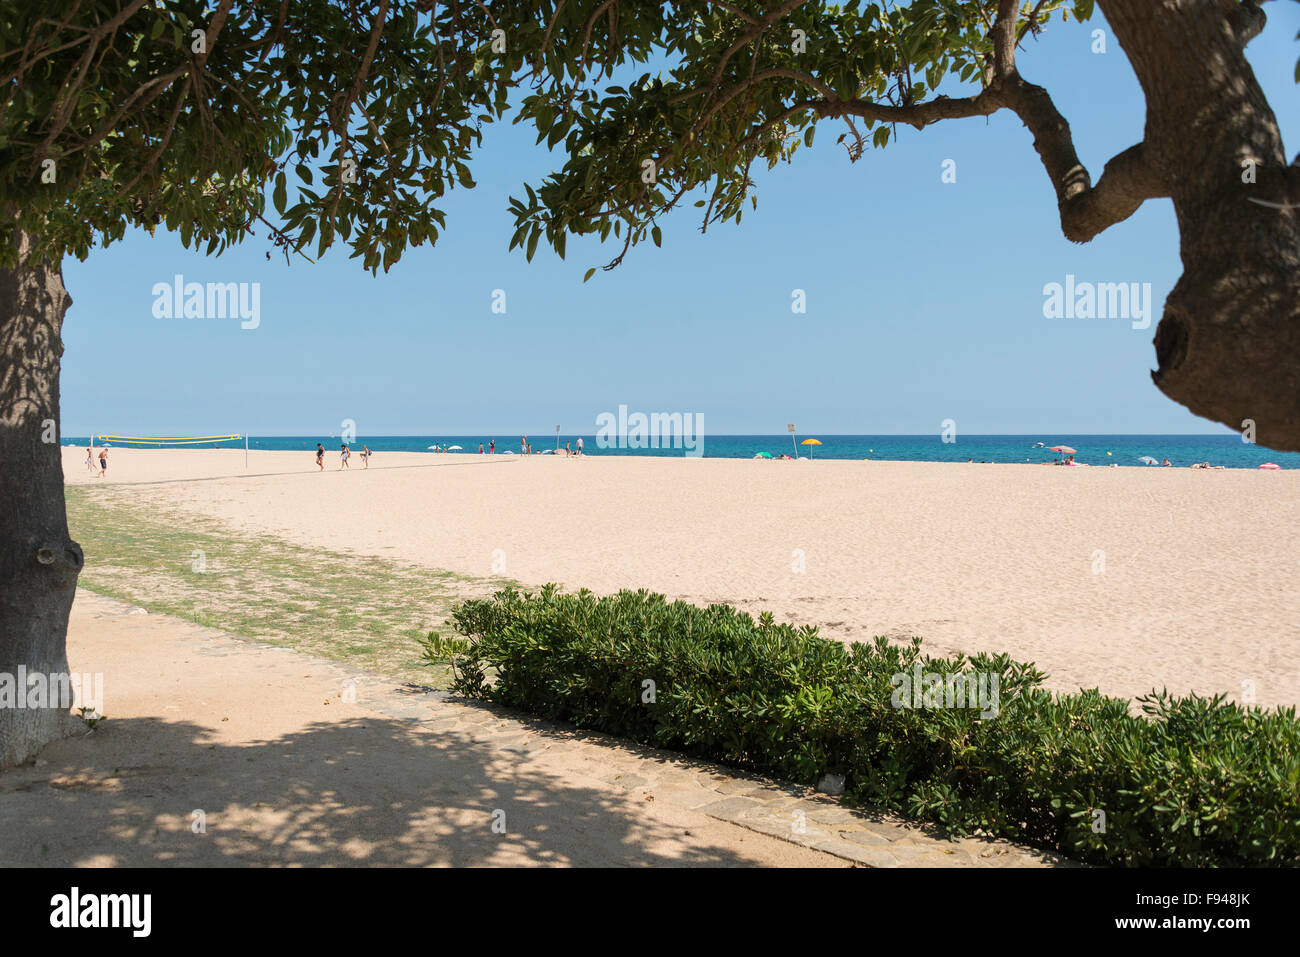 Beach view, Malgrat de Mar, Costa del Maresme, Province of Barcelona, Catalonia, Spain - Stock Image